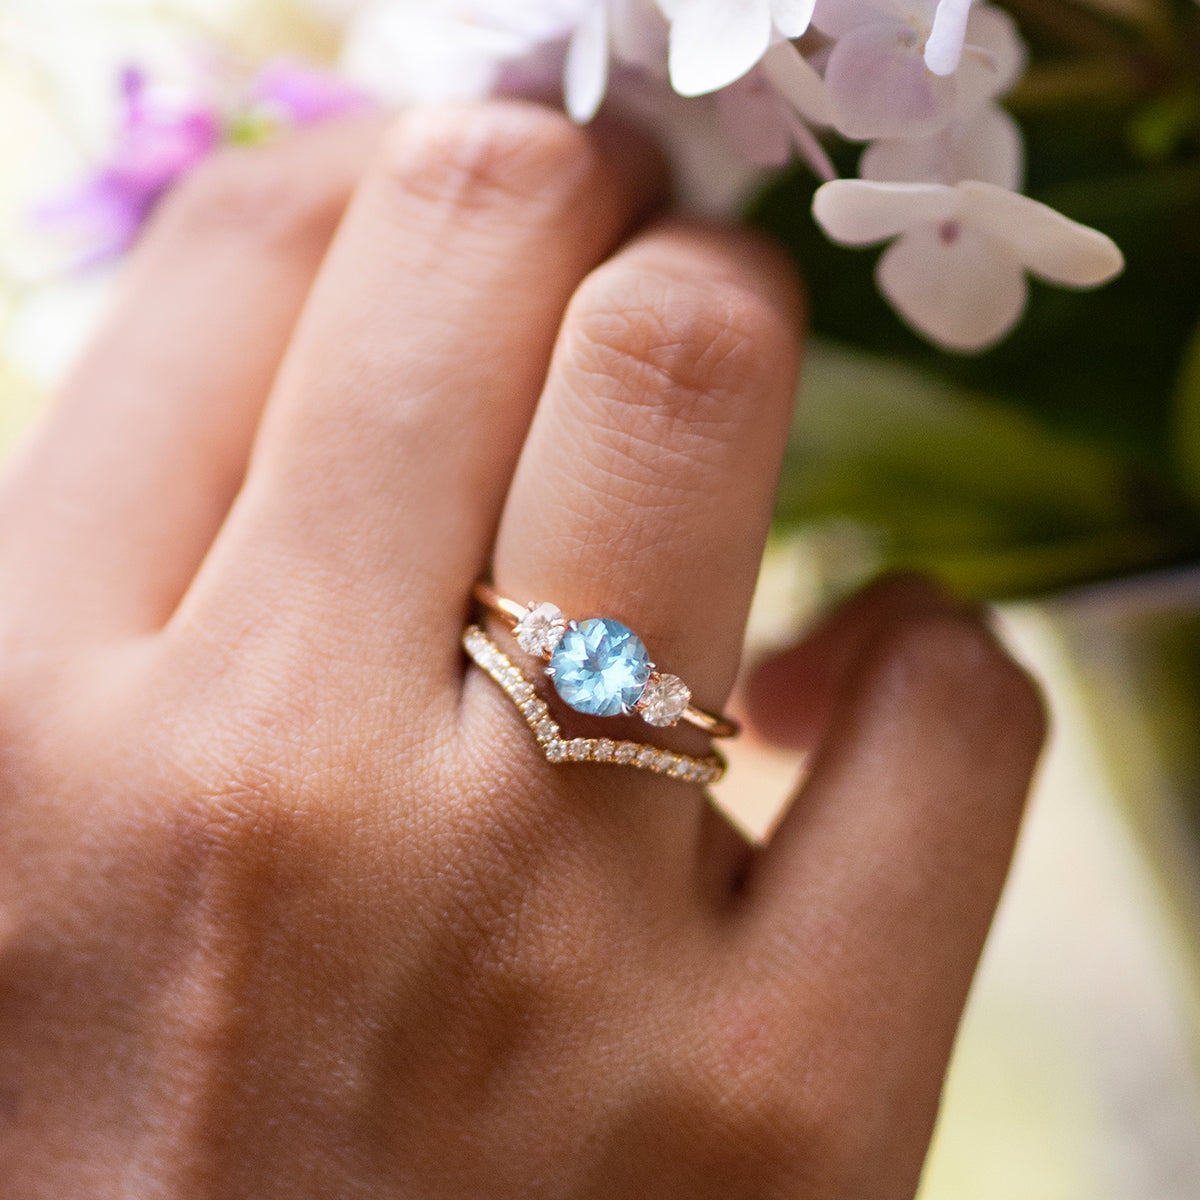 Round Cut Aquamarine Trilogy Engagement Ring and Chevron Band from Fenton on a hand